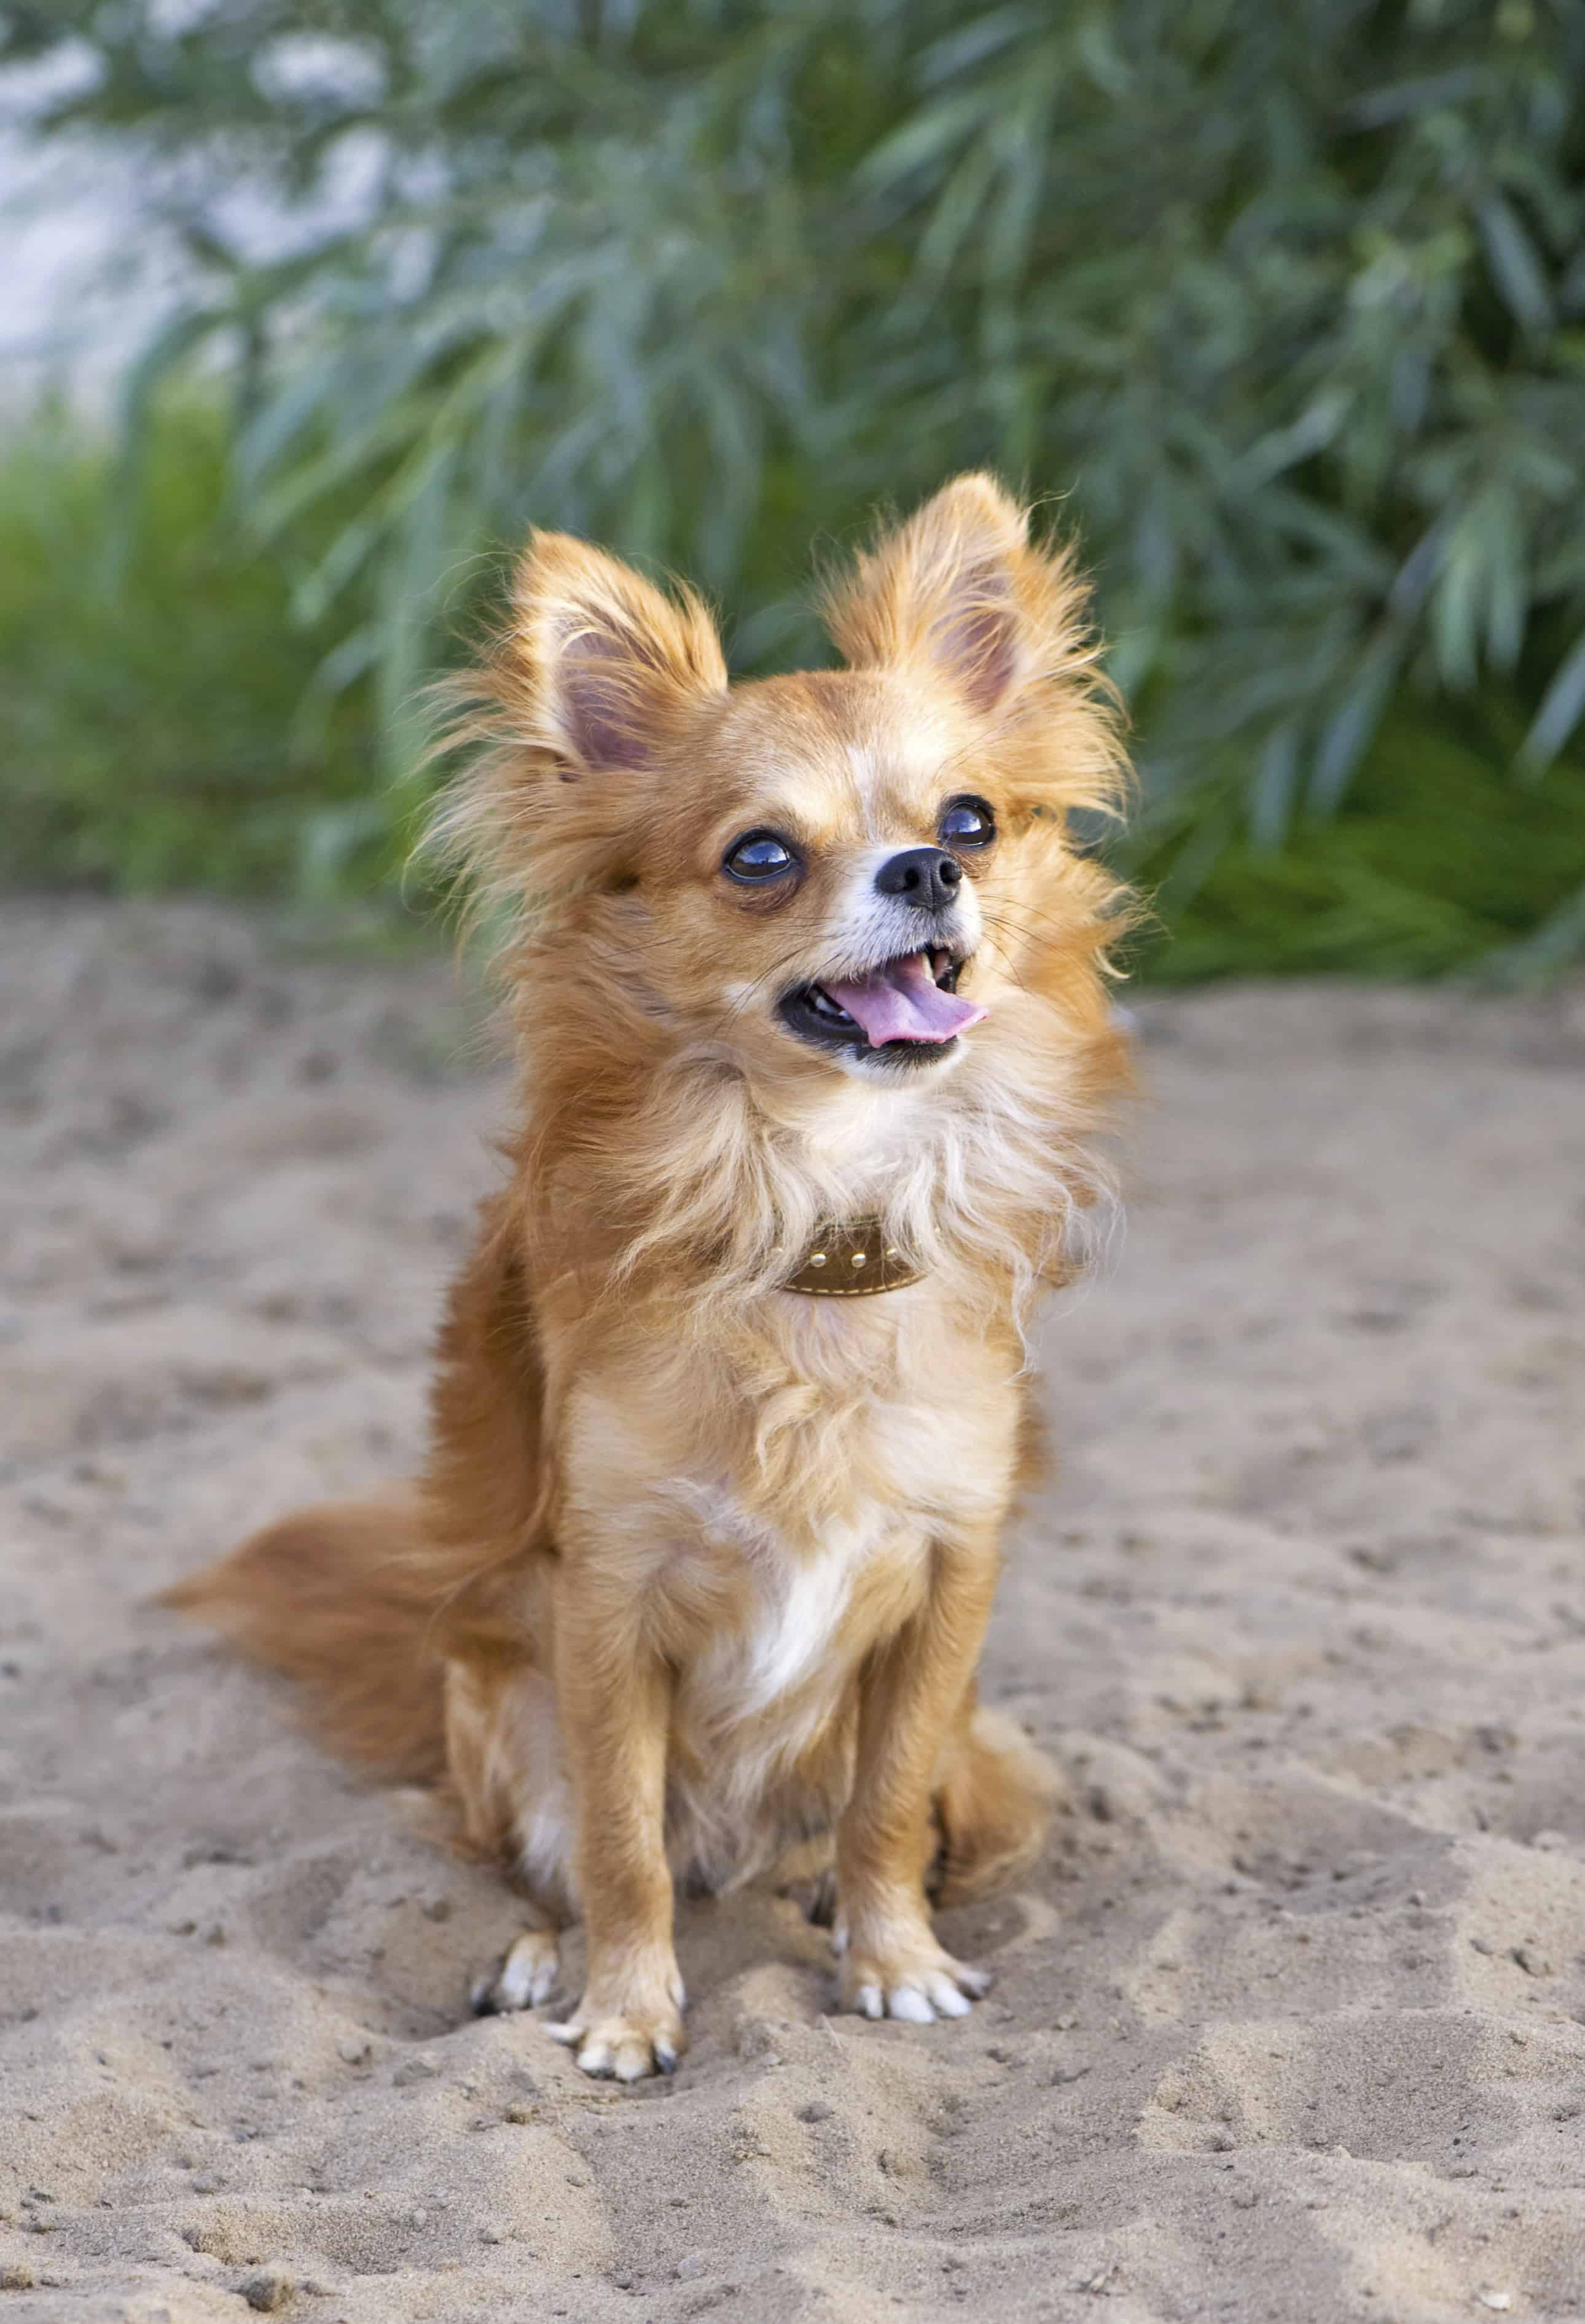 Chihuahuas With Long Hair Require Slightly More Upkeep Than Short Haired